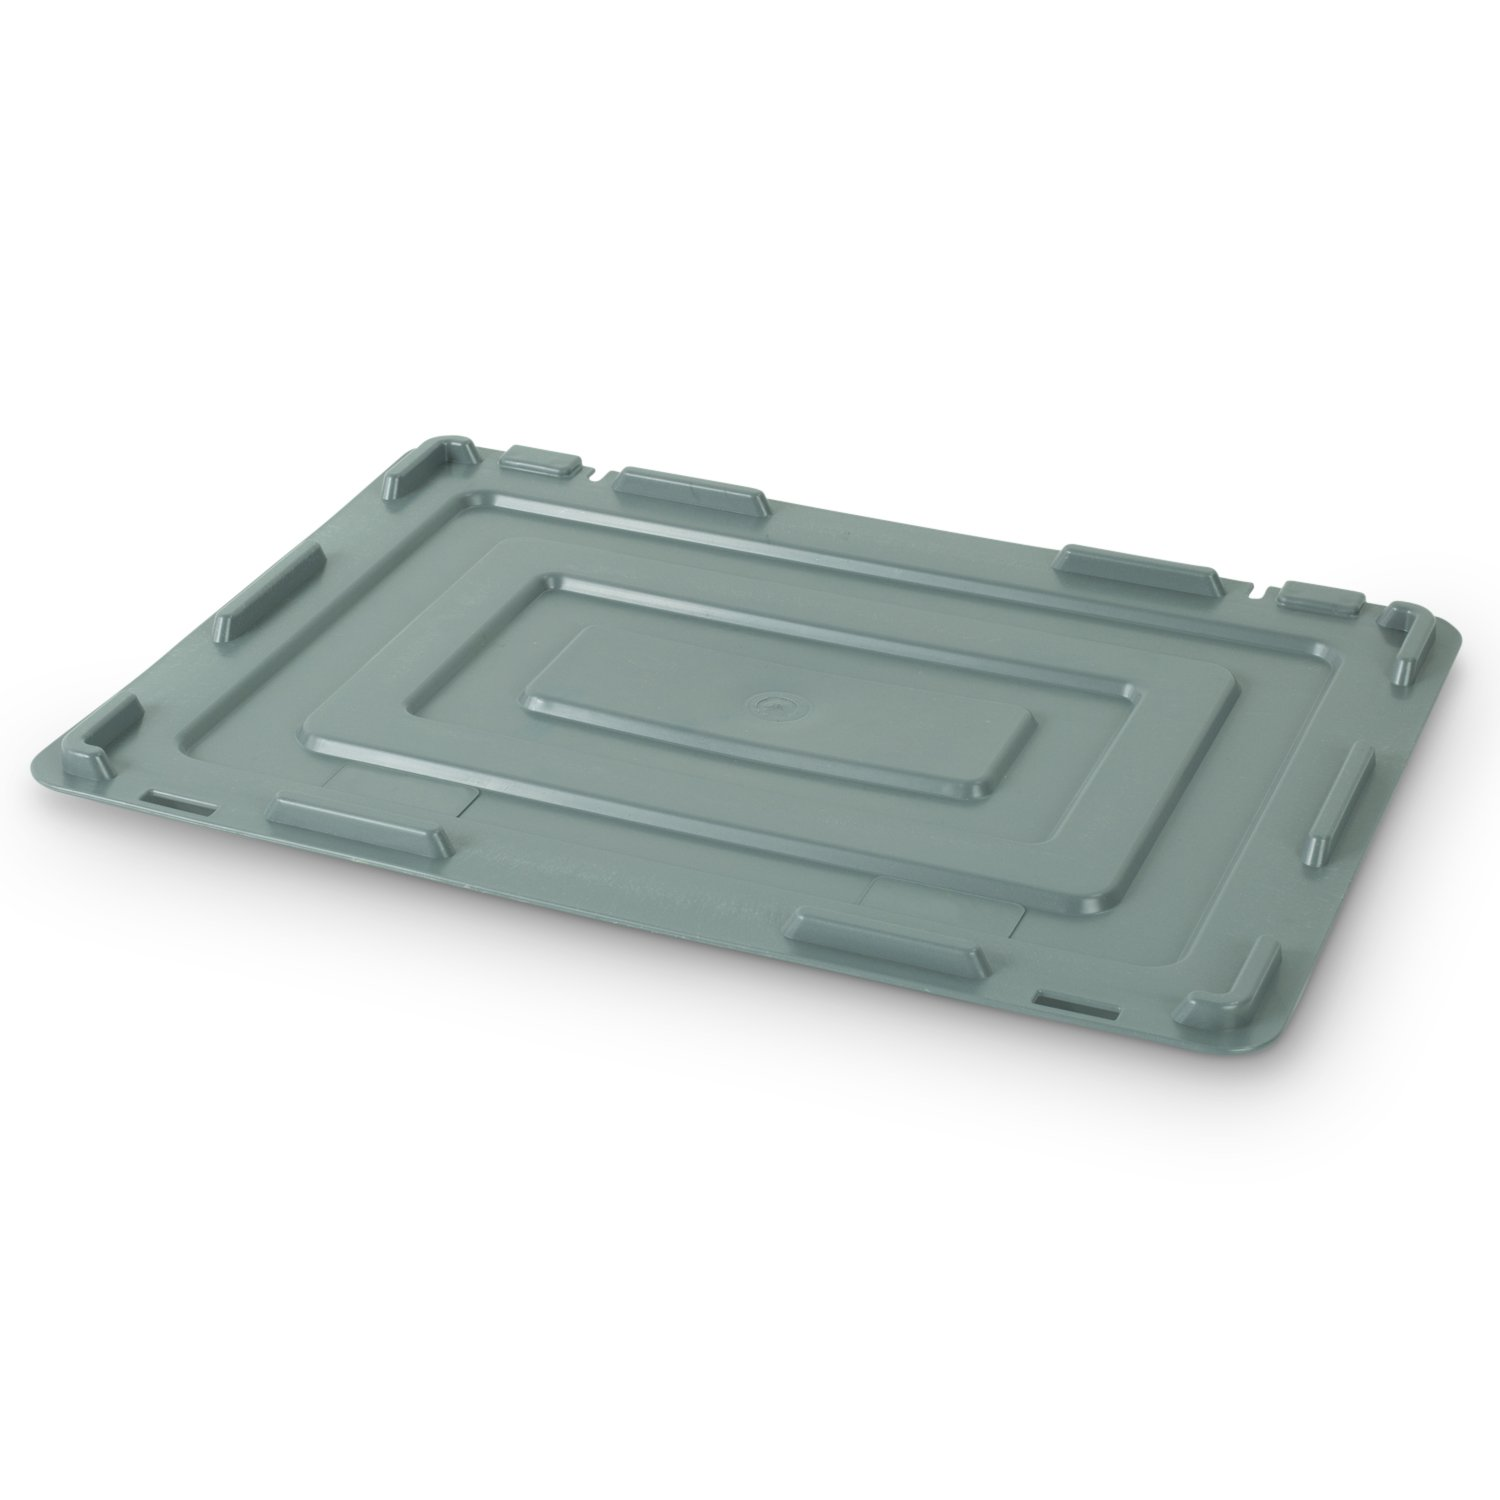 Hans Schourup 22601041 Lid for Storage Euro Container – 400 x 300 mm